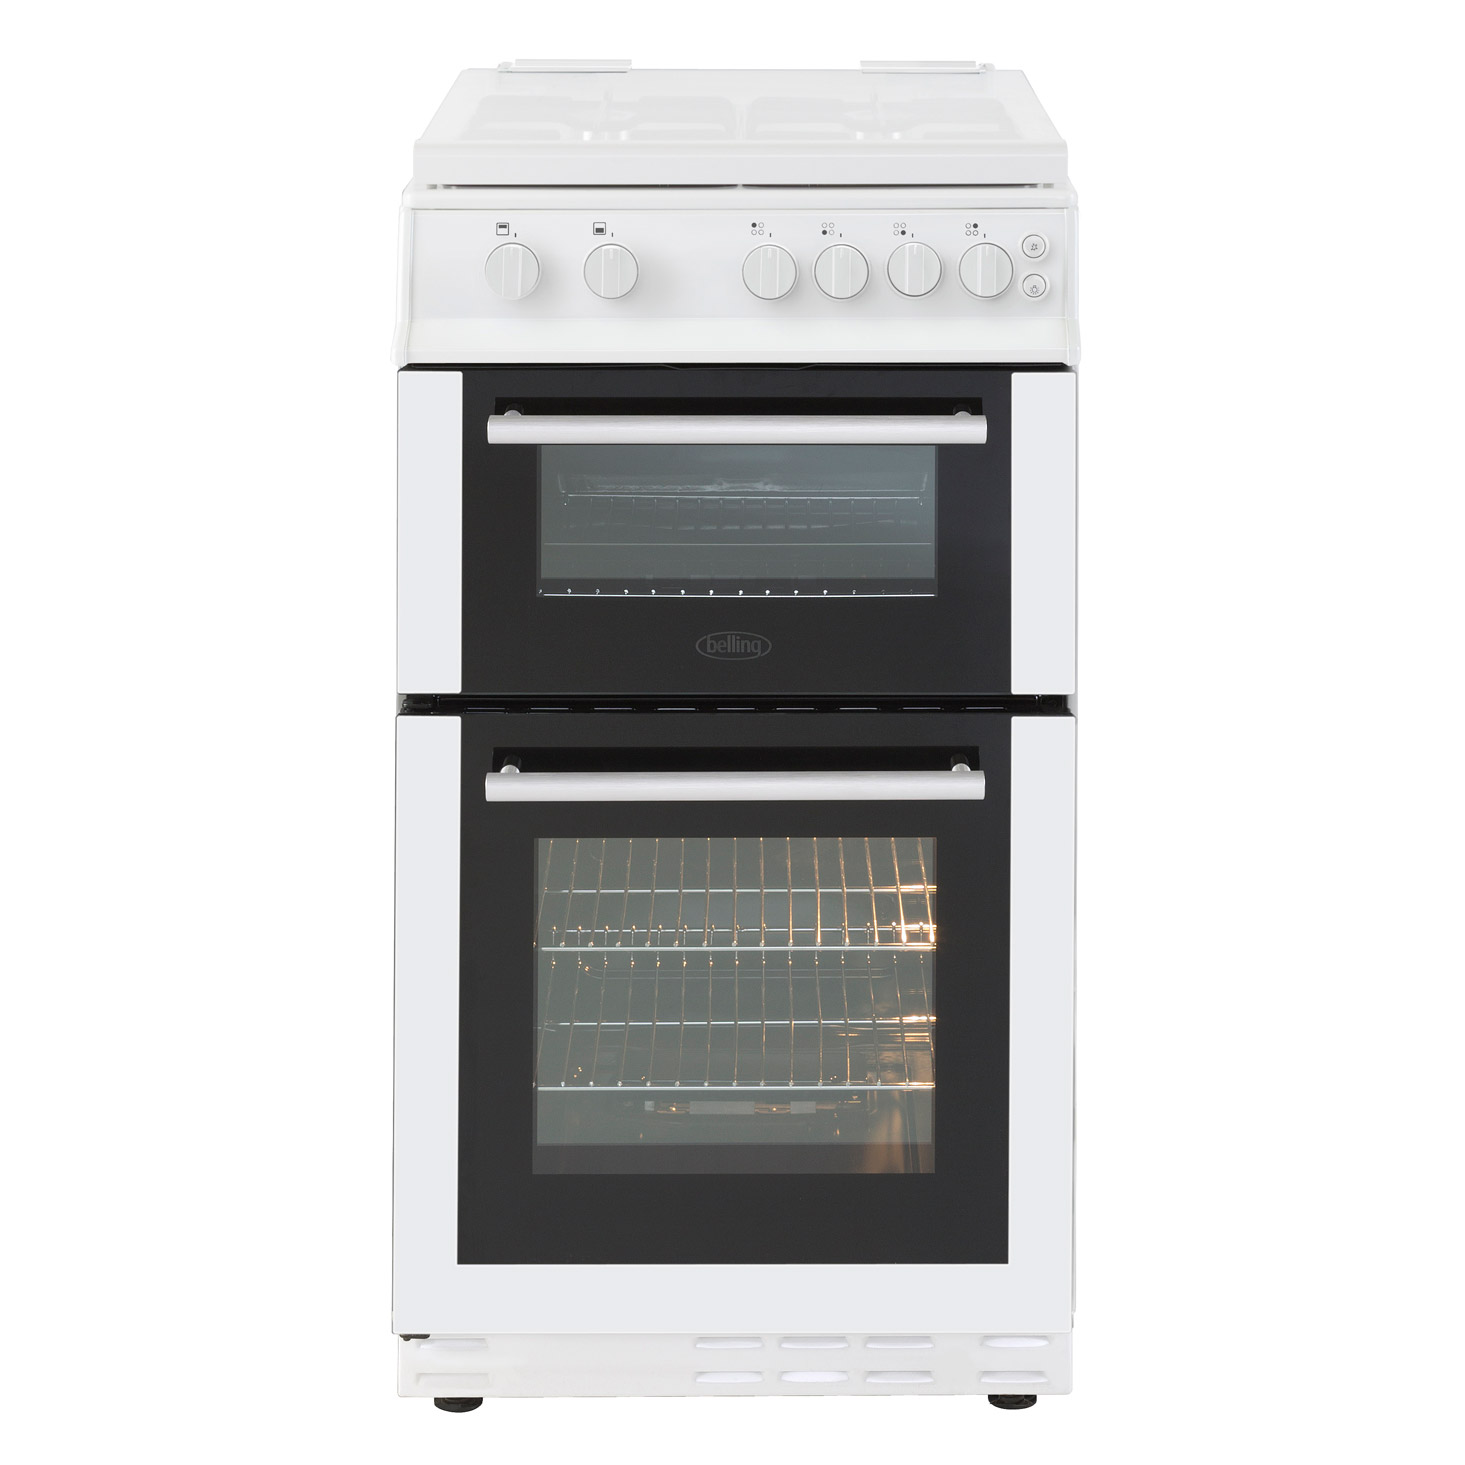 Belling 444444001 50cm Gas Cooker In White Double Oven